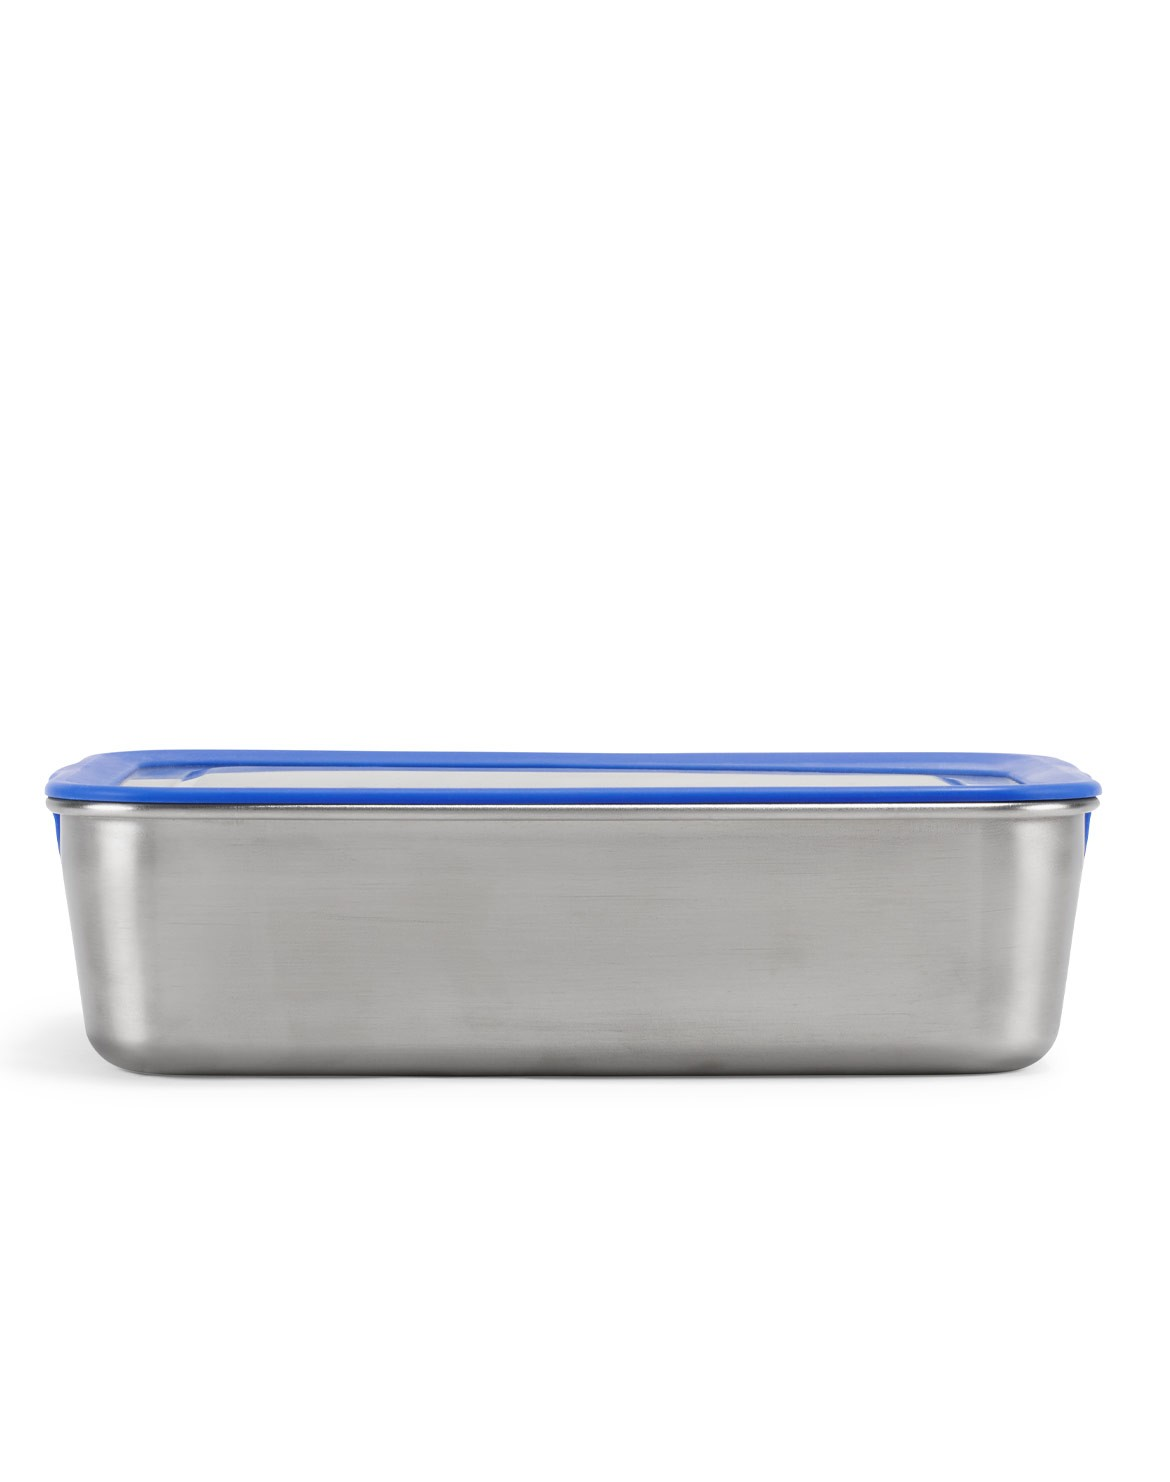 Meal Box 1005ml Blueberry Bliss